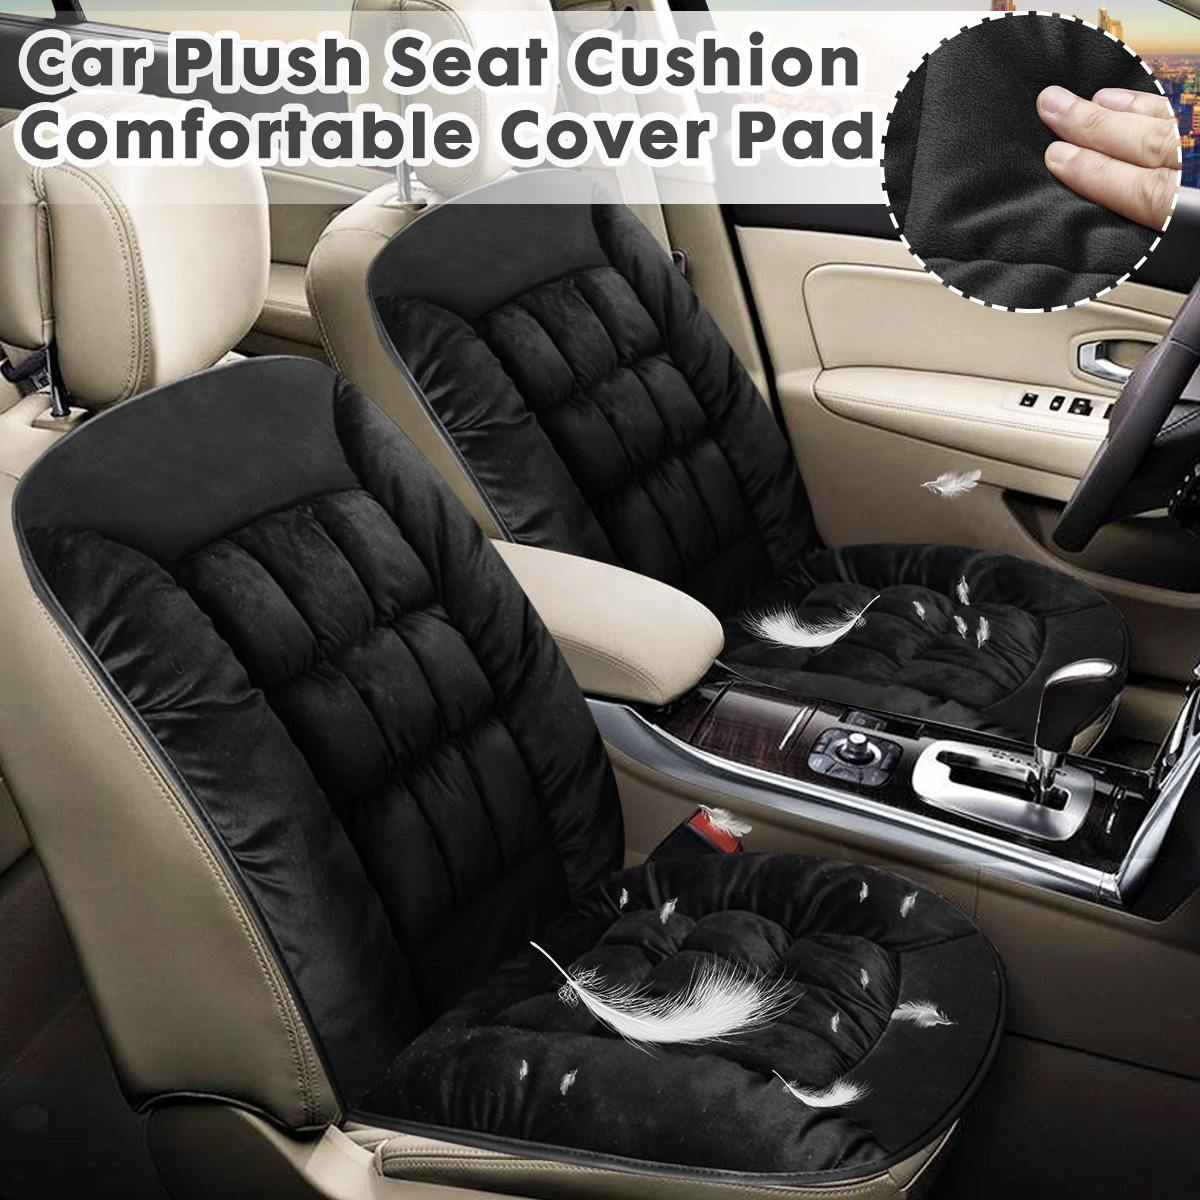 Interior-Accessories Seat-Cover Fabric Winter-Pad Cushion Styling Universal Car Black